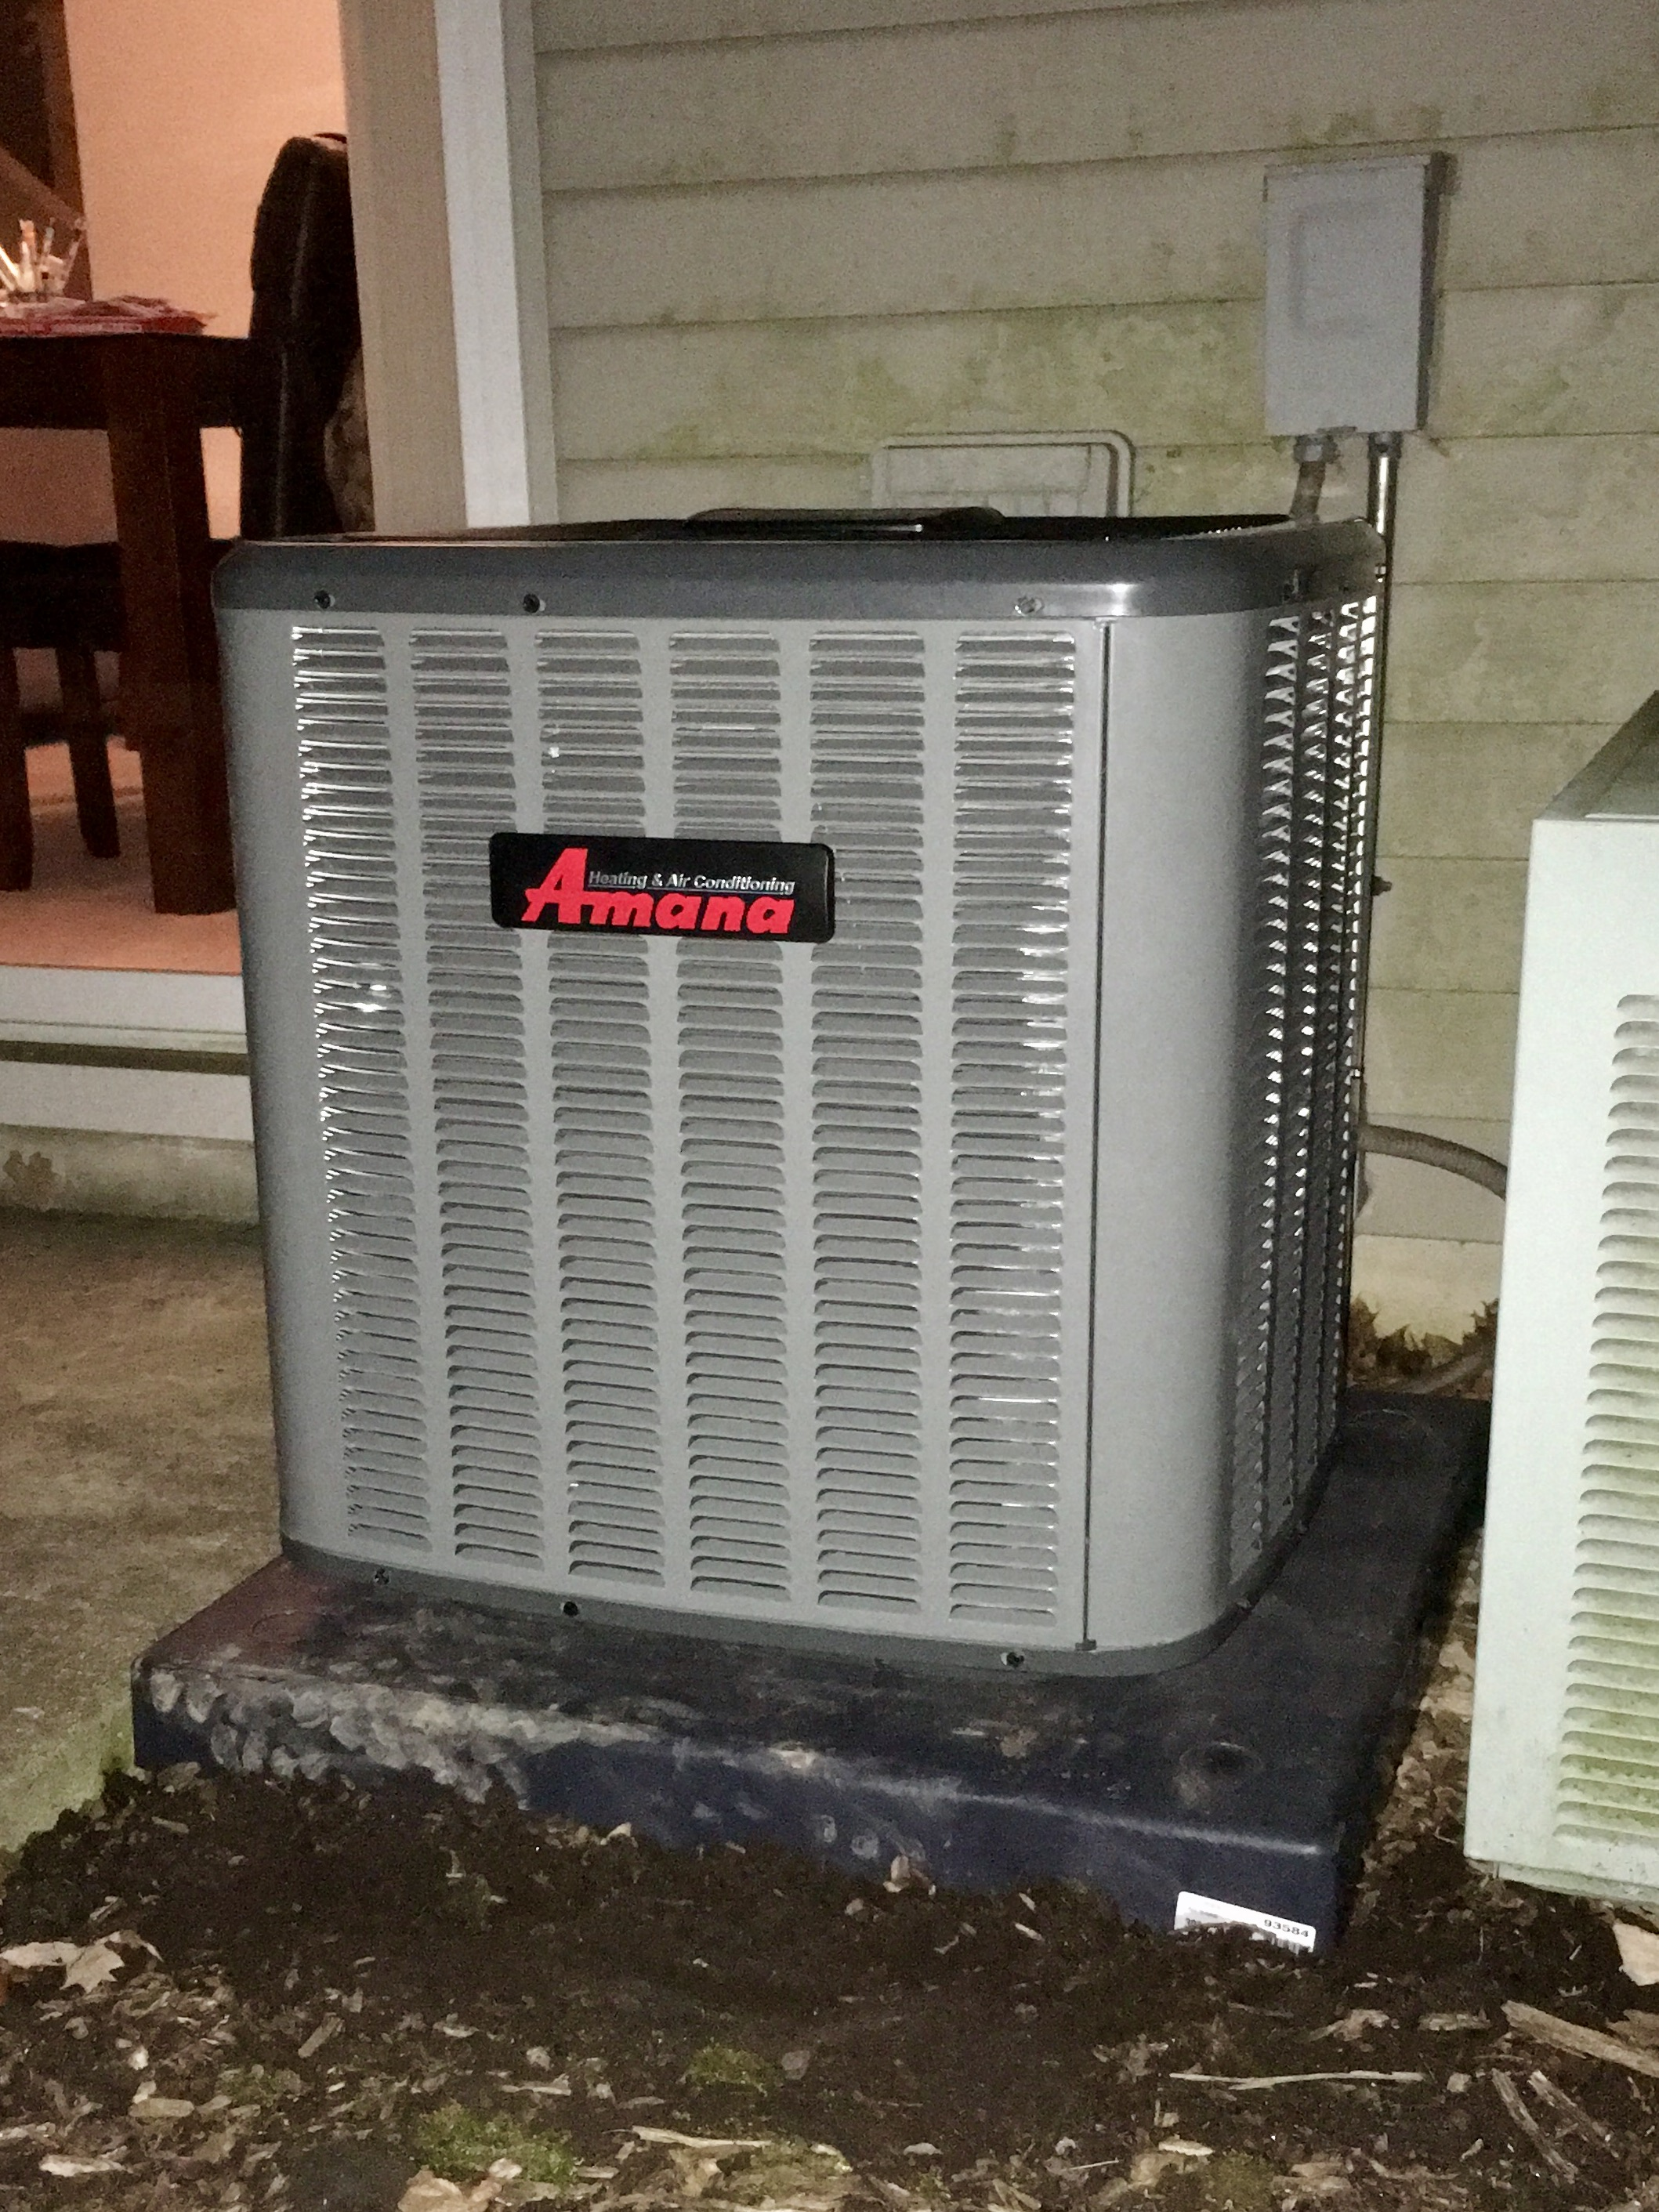 Amana ASX13 Central AC Install<br>February 13, 2017 - Plainfield IL